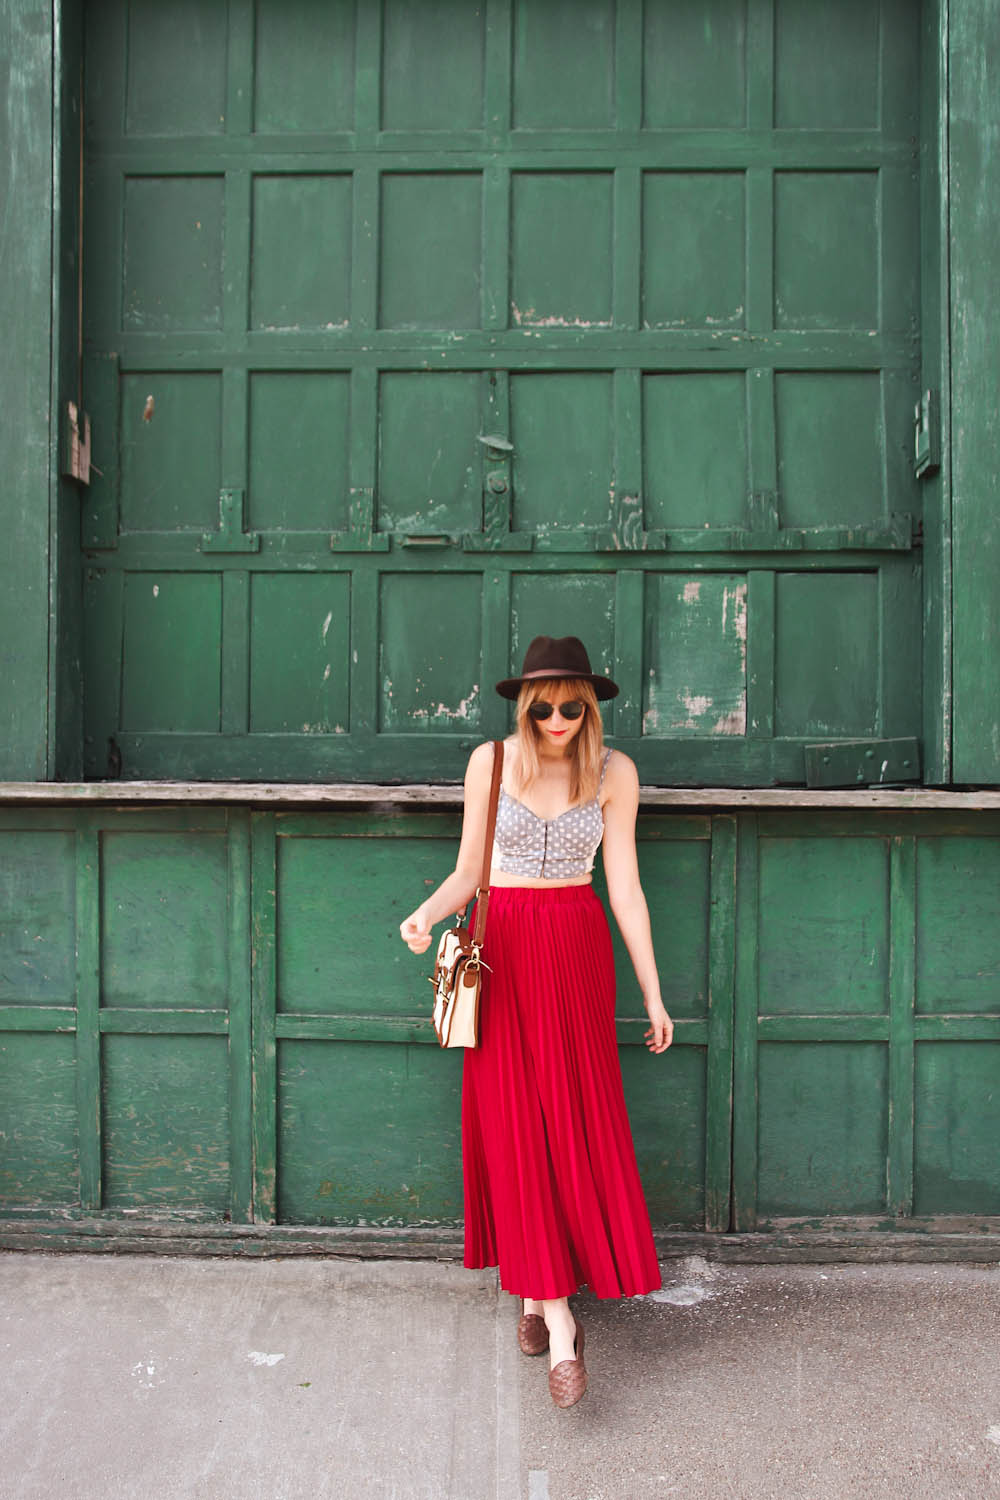 nyc vintage blog, nyc fashion blogger, nyc fashion blog, red maxi skirt, chicwish maxi skirt, long beach new york, long beach boardwalk